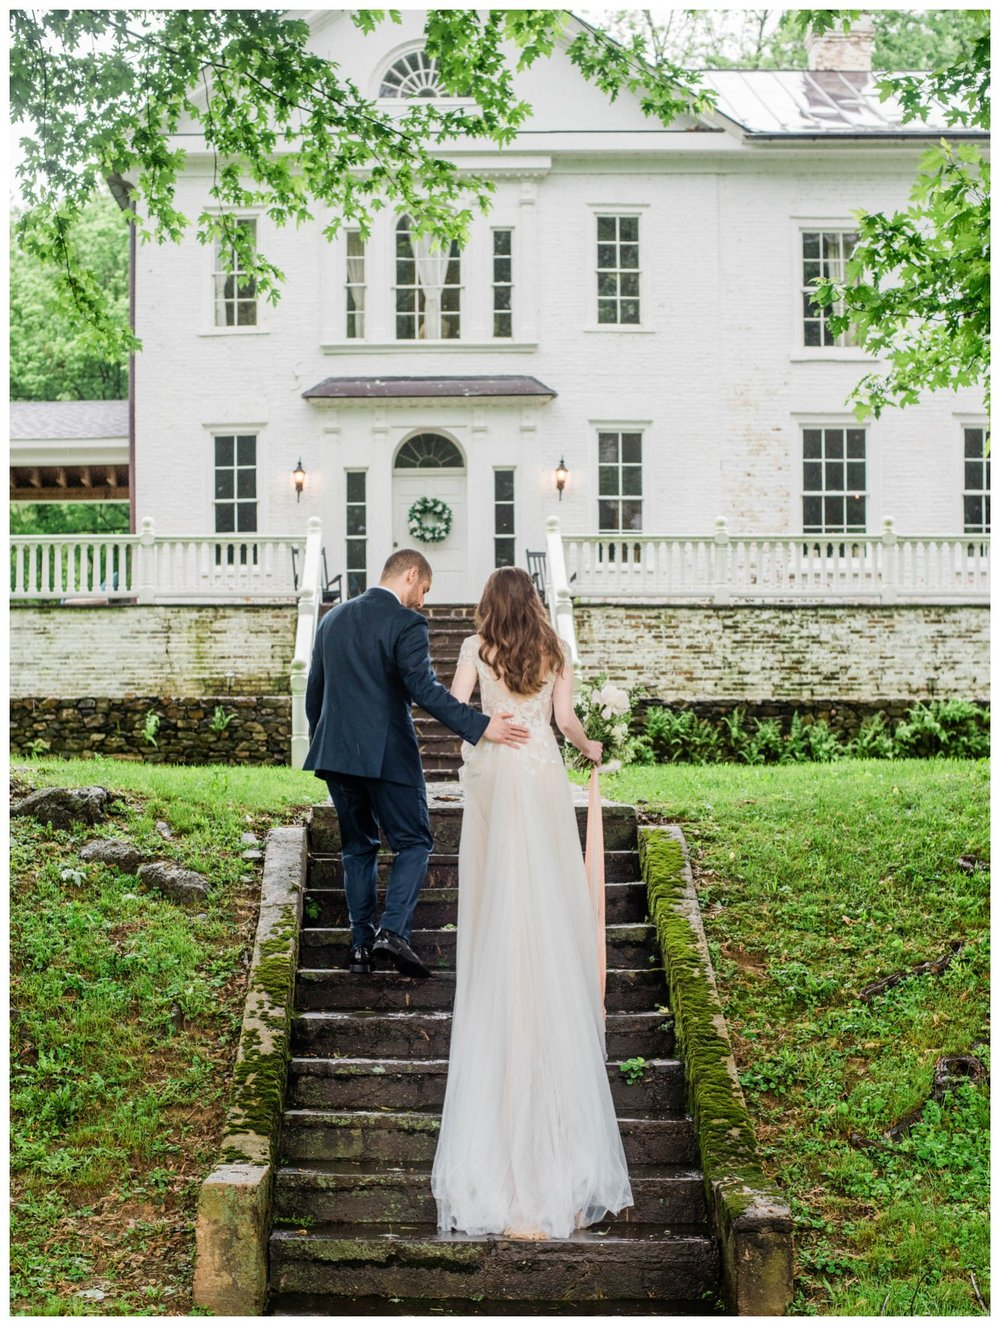 Intimate spring wedding at the Retreat at Cool Spring in Bluemont Virginia by Washington DC fine art photographer Lissa Ryan Photography bride and groom portraits